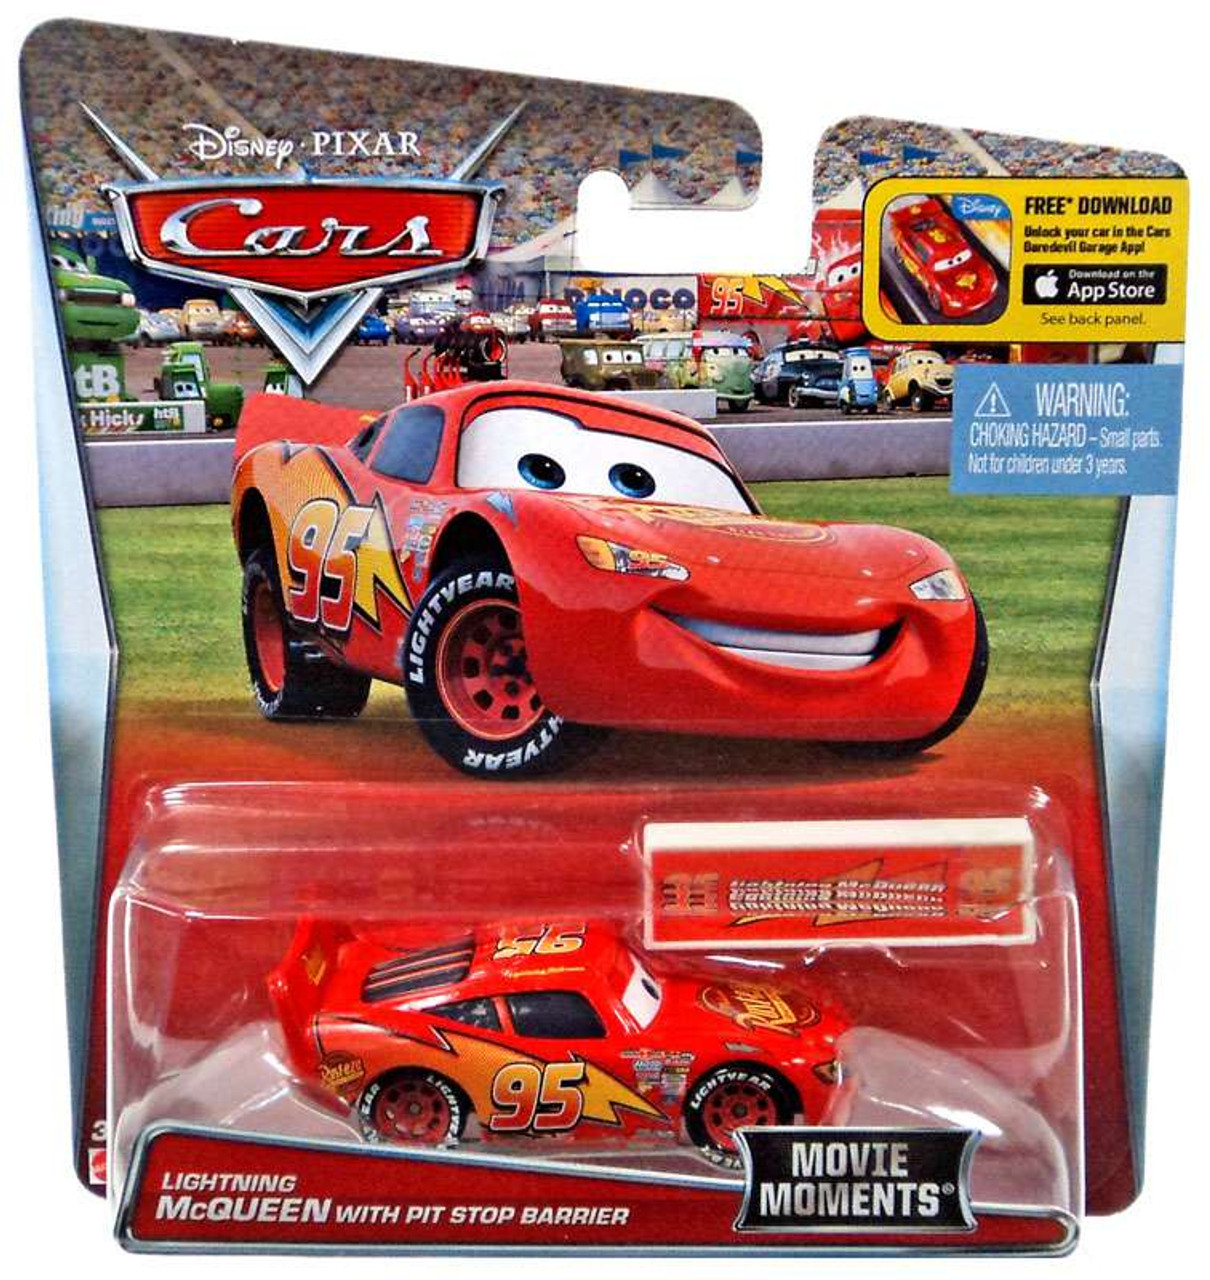 Cars The Movie: Disney Pixar Cars Movie Moments Lightning McQueen 155